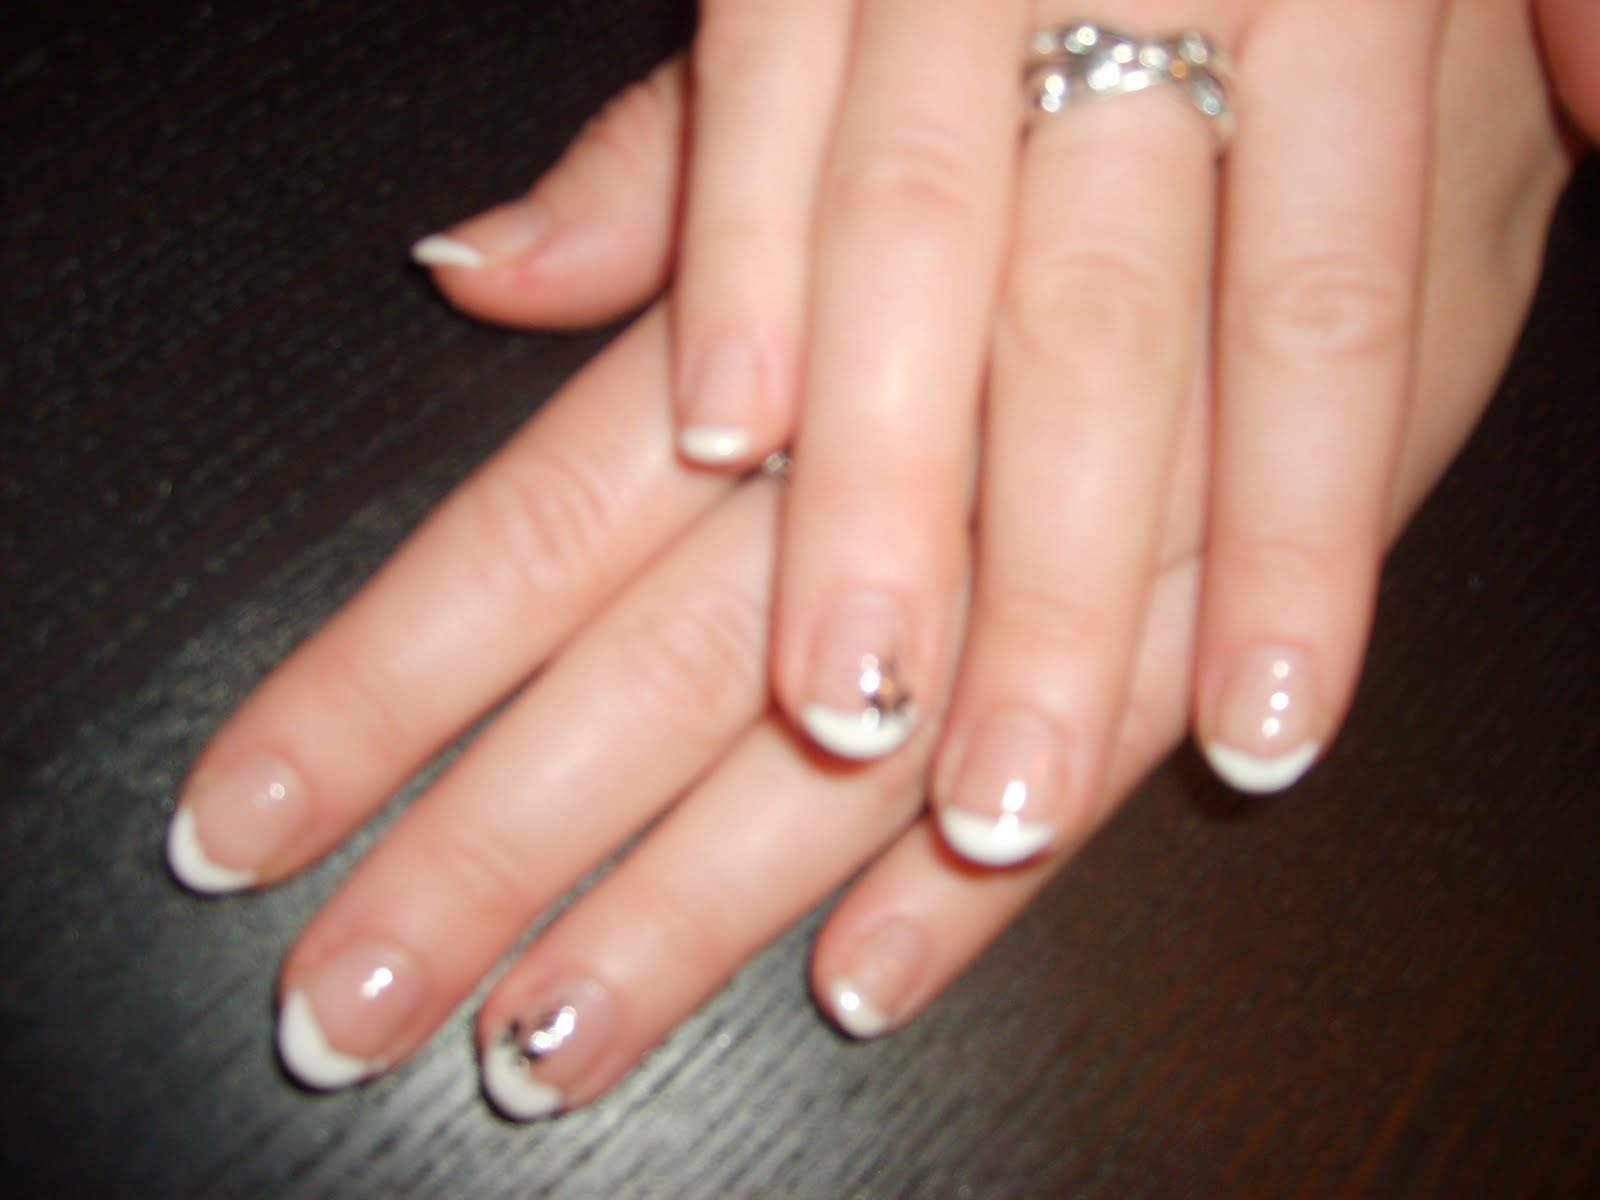 Magic 39 ongle french manucure sur ongles naturels - Ongles french manucure photos ...